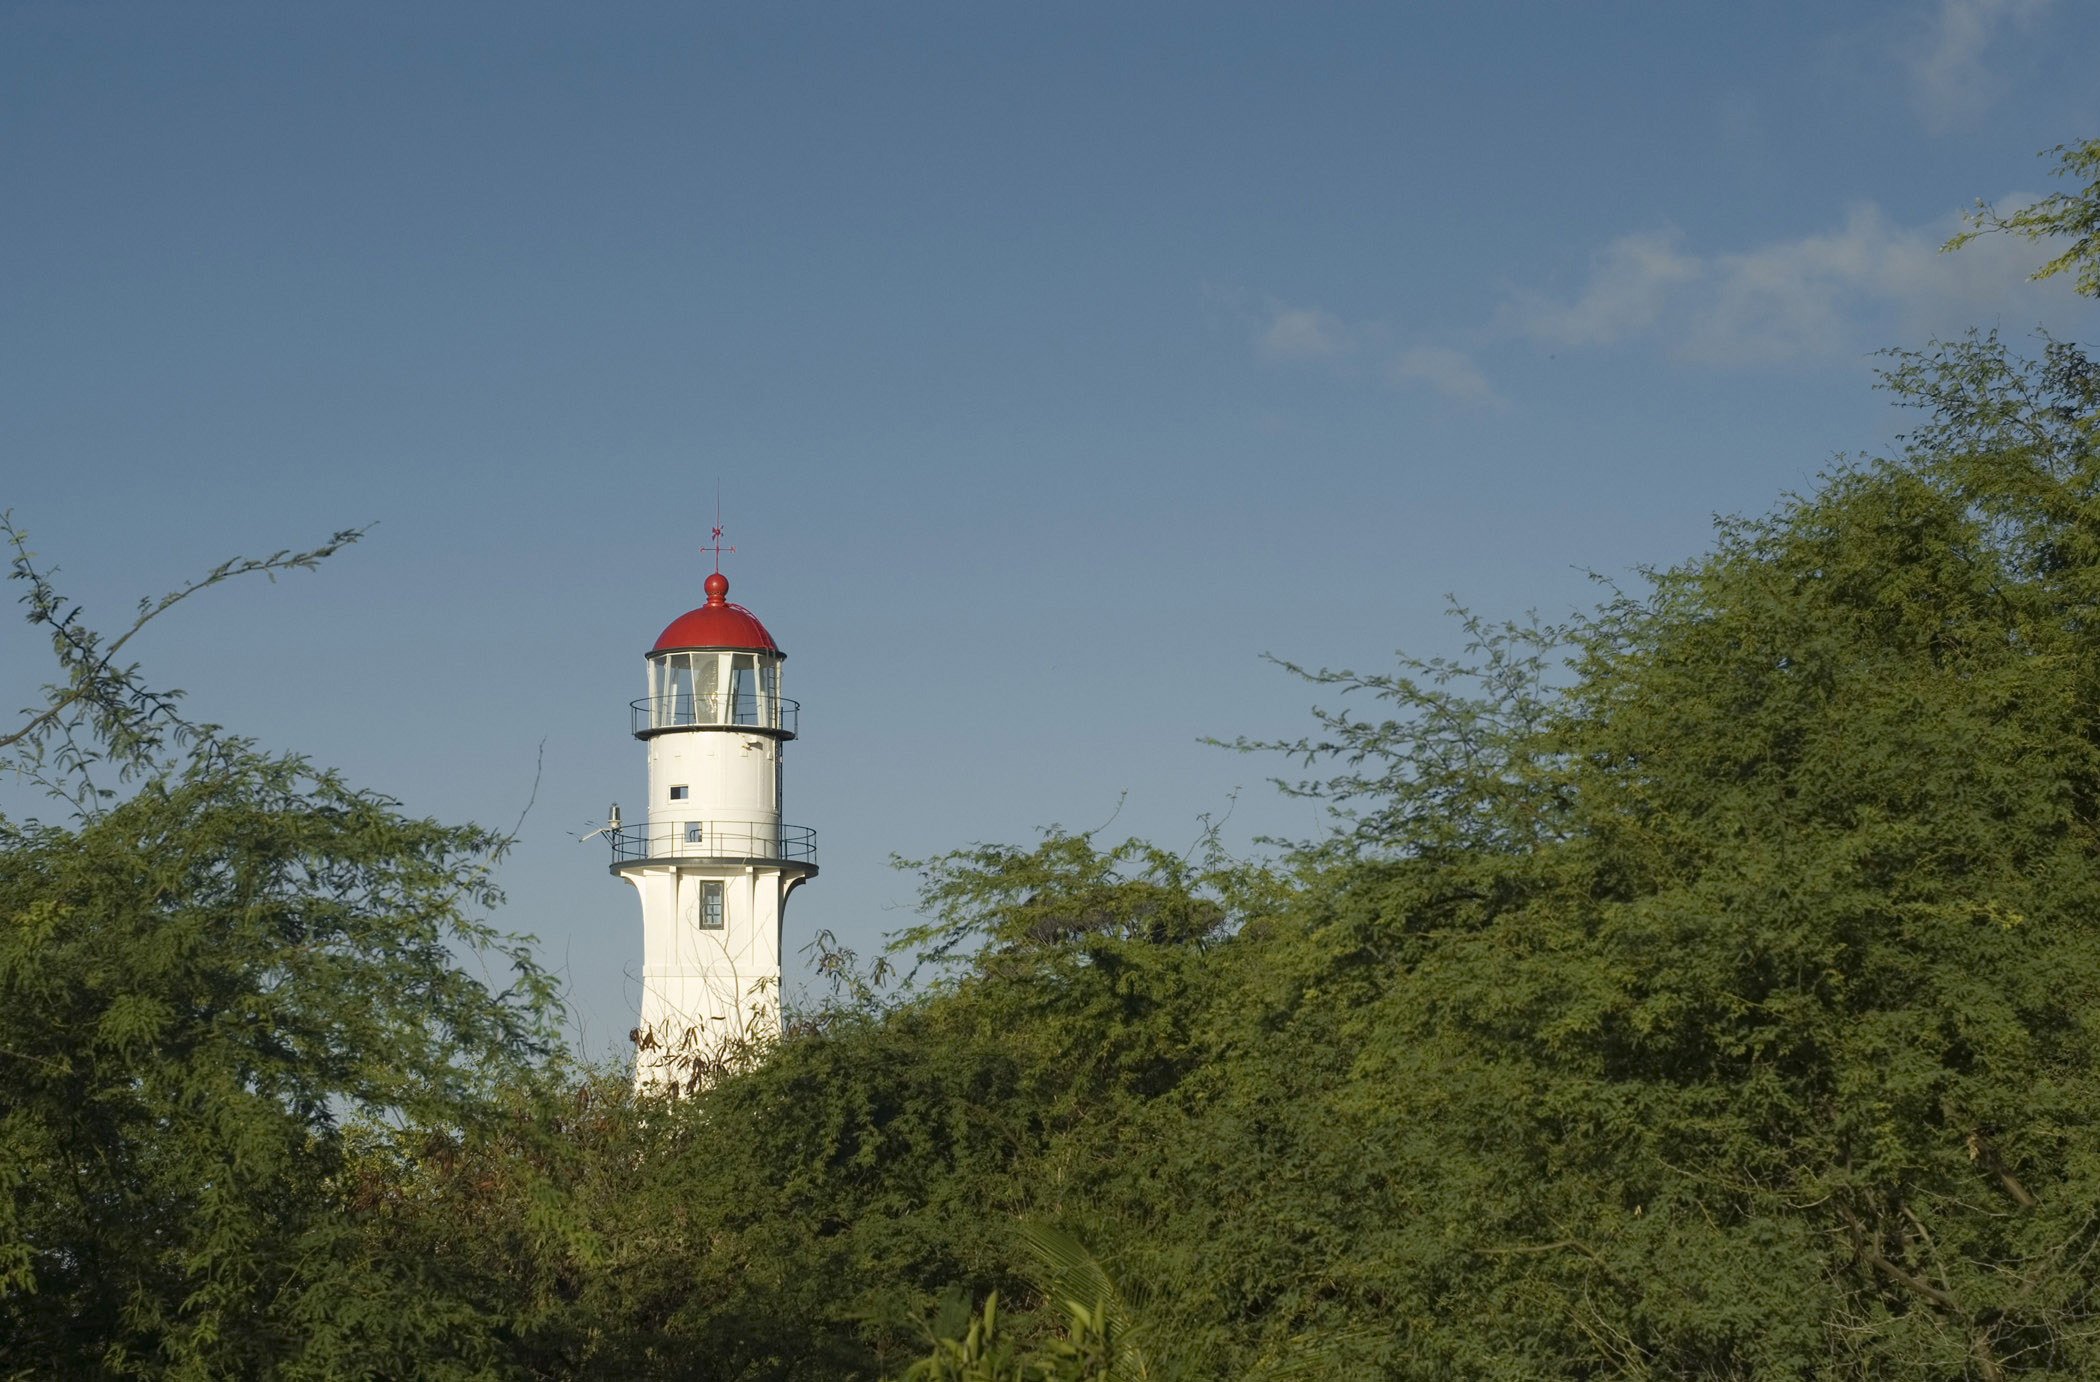 View across green vegetation of the lamp and tower of the Diamond Head Lighthouse, Honolulu, Hawaii